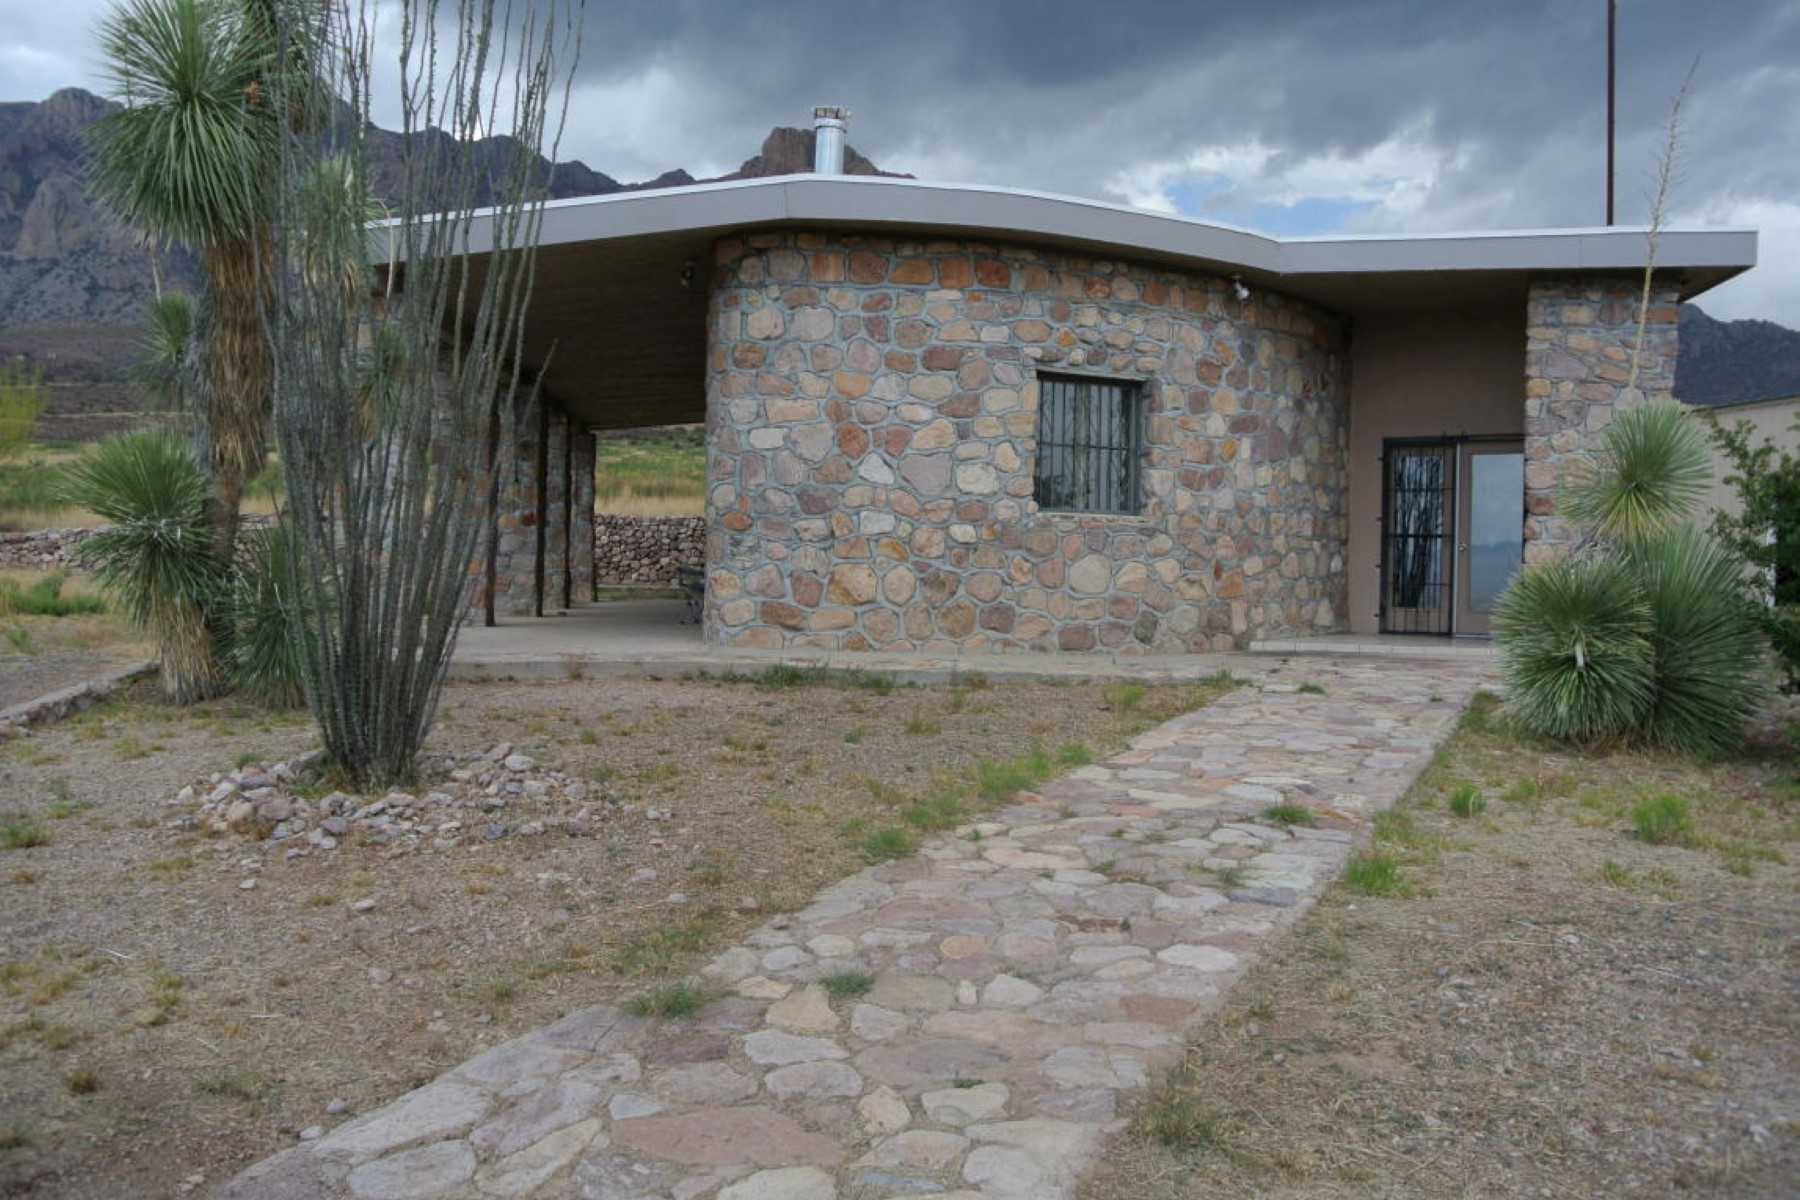 獨棟家庭住宅 為 出售 在 Lovely home in South Eastern Arizona 777 W McReynolds Way Portal, 亞利桑那州, 85632 美國